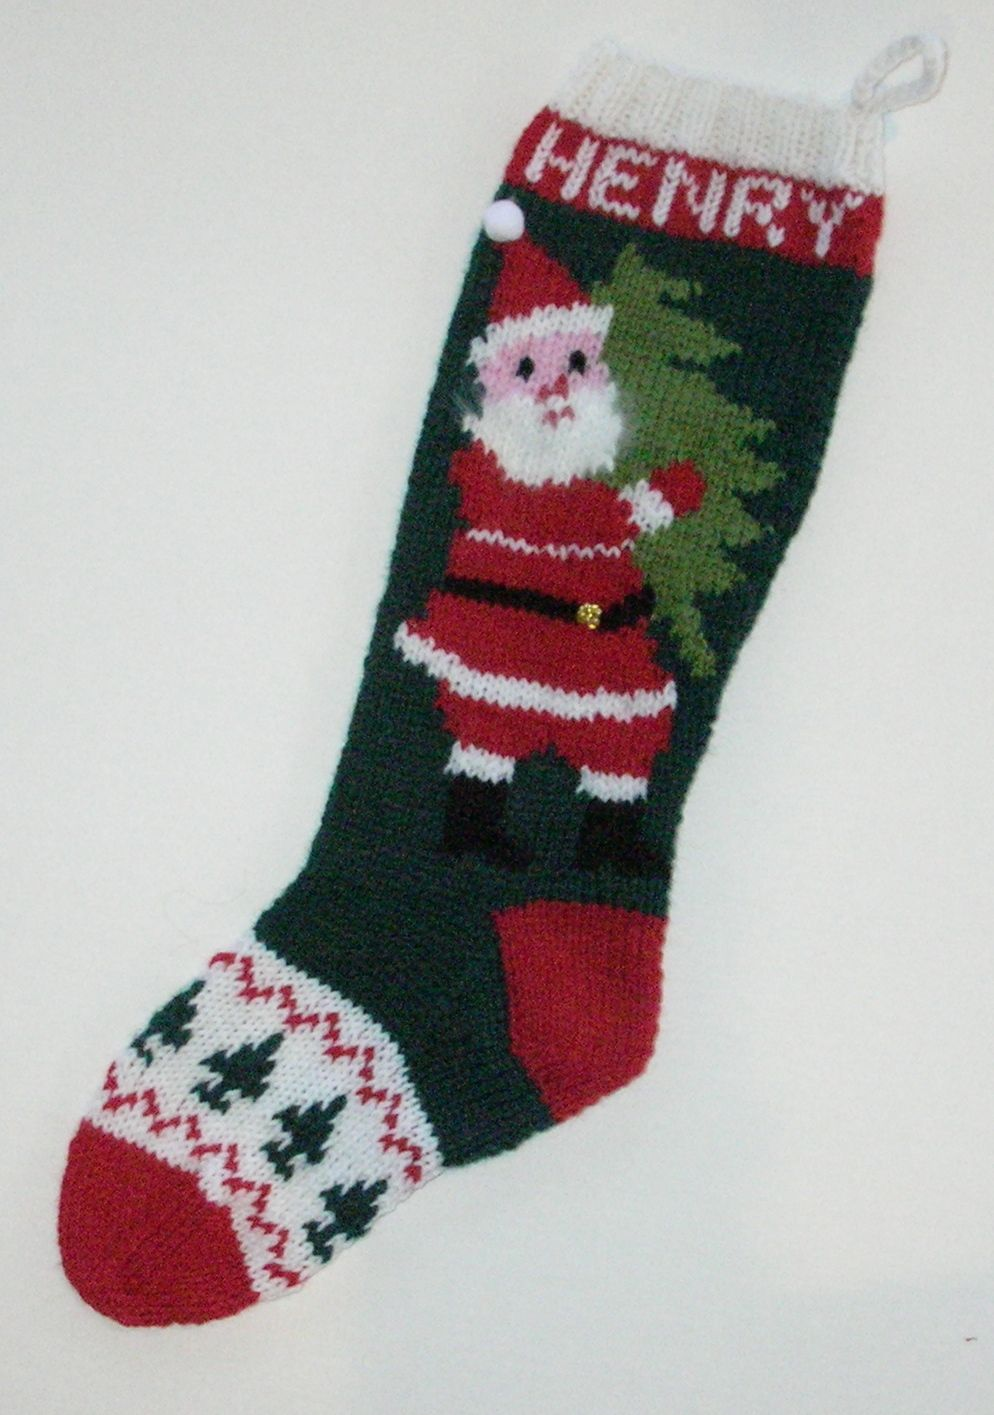 Pin by CraftsByMarie on Christmas Stockings | Pinterest | Stockings ...